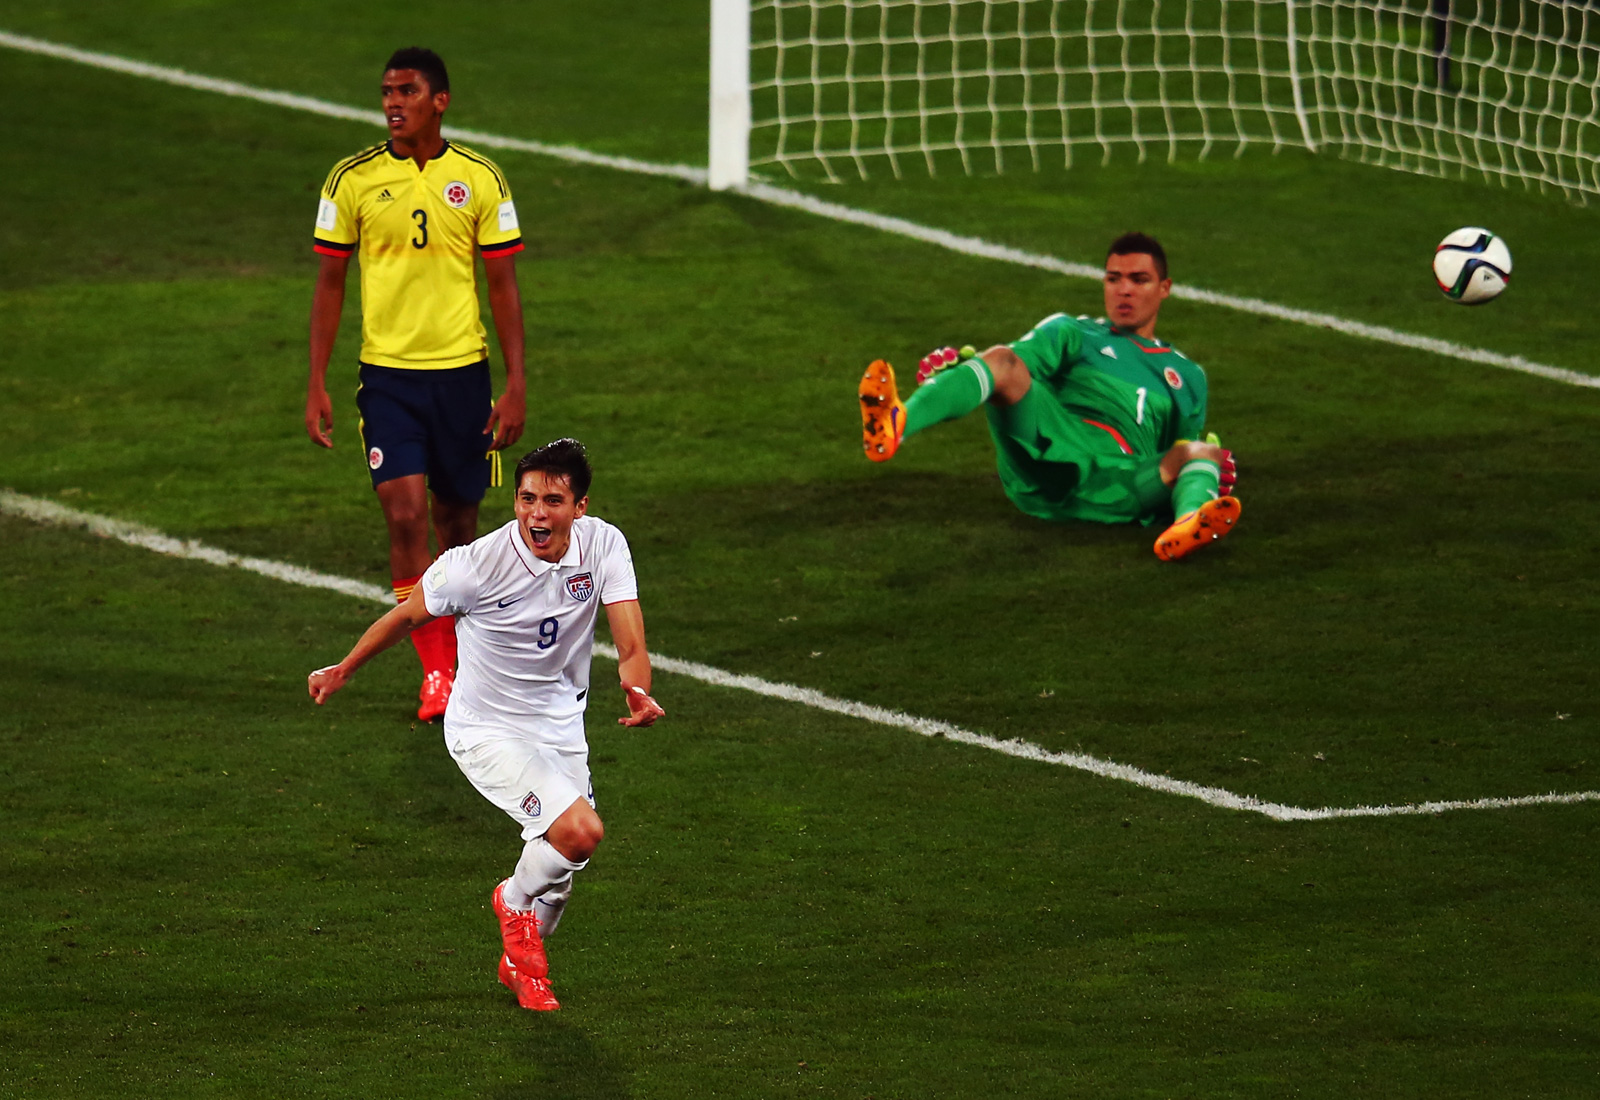 Rubio Rubin celebrates the goal that gives the USA a 1-0 win over Colombia in the FIFA U-20 World Cup round of 16. Zack Steffen's late penalty save preserved the win, as the Americans reached the quarterfinals for the first time since 2007.